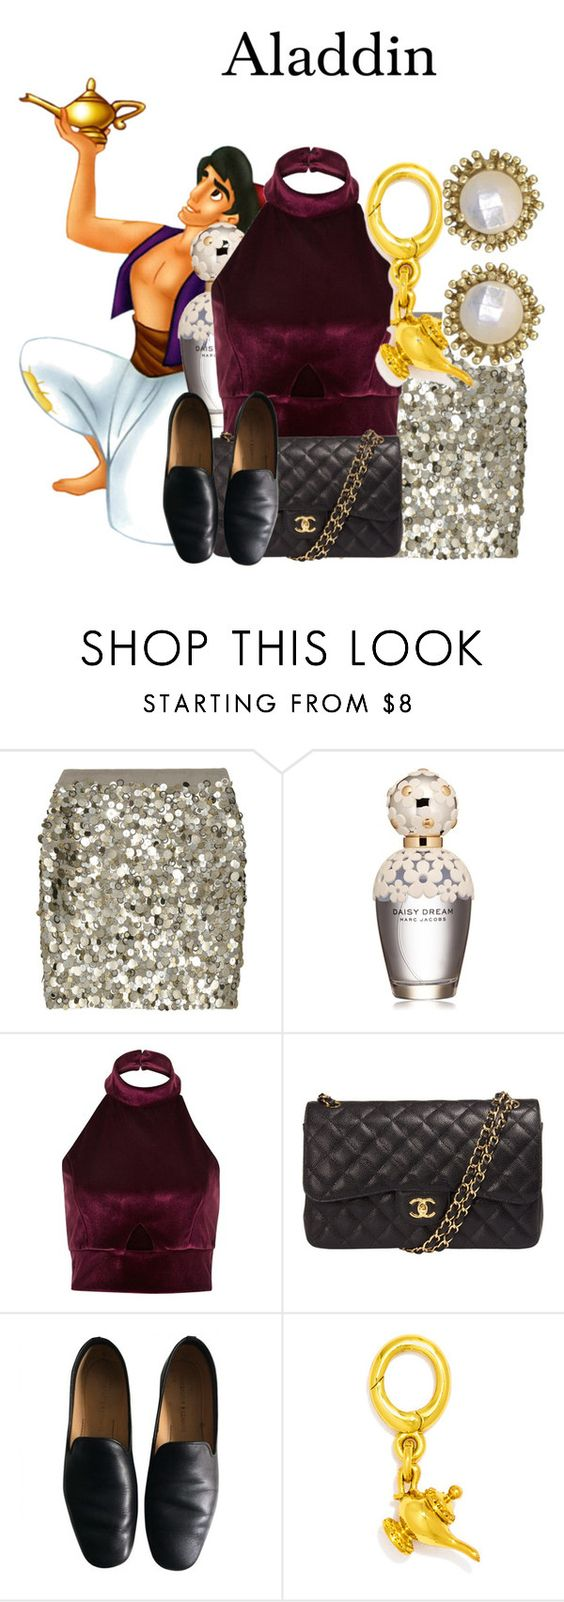 """Aladdin/Aladdin/1-11-16"" by megan-vanwinkle ❤ liked on Polyvore featuring Disney, J.Crew, Marc Jacobs, River Island, Chanel, Lemaire, BaubleBar and Kendra Scott"